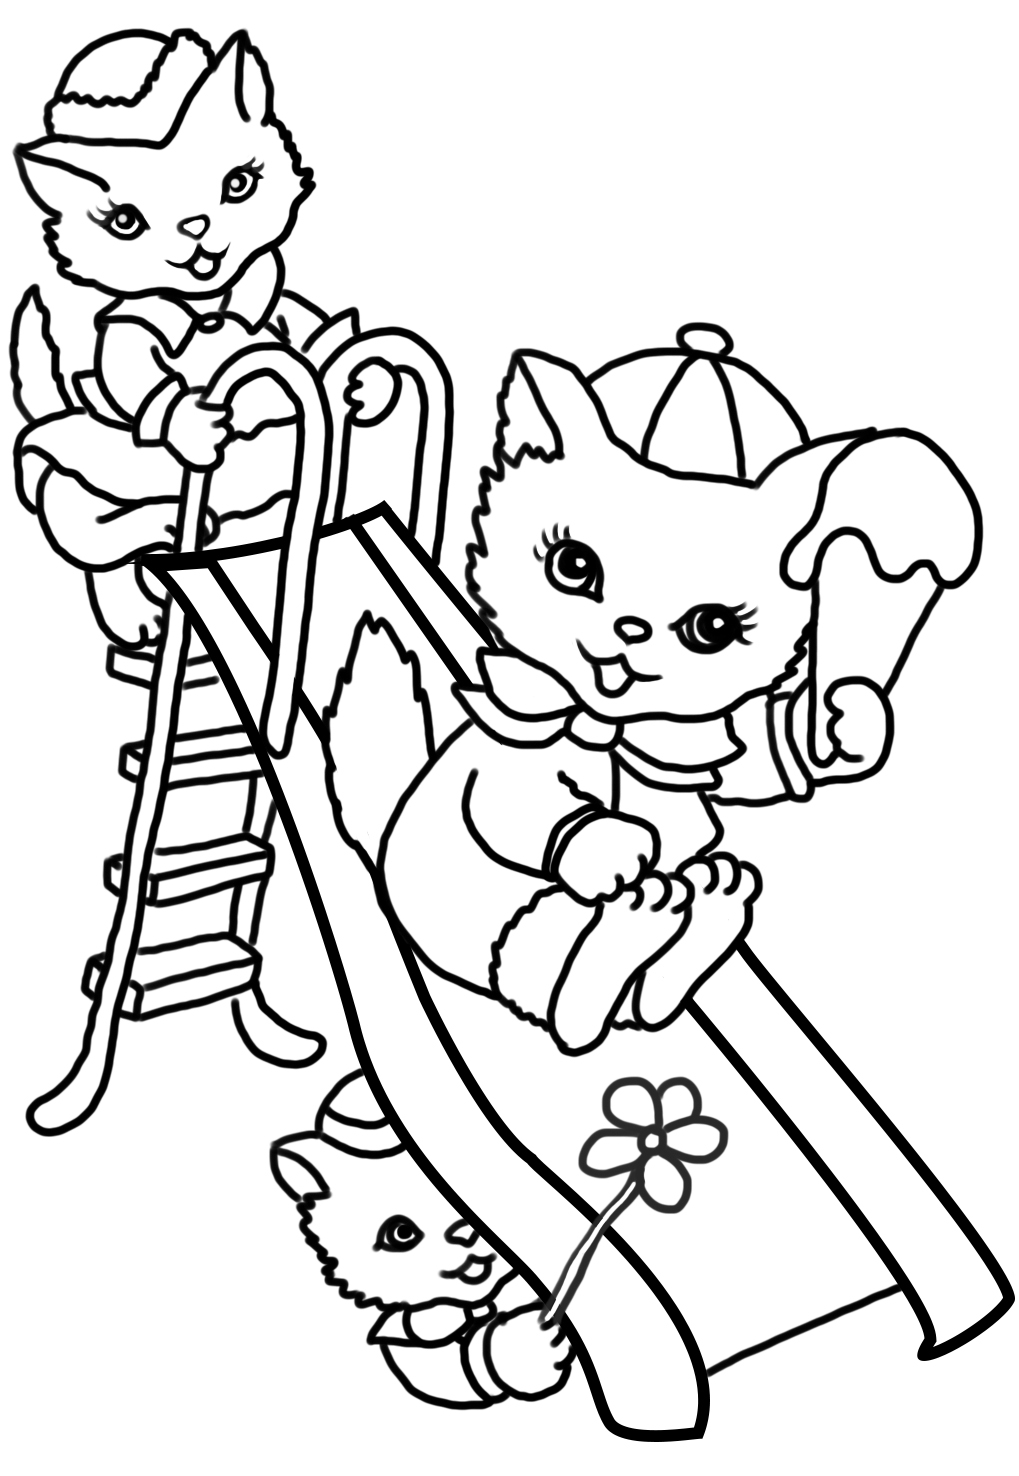 summer coloring book pages - photo#31